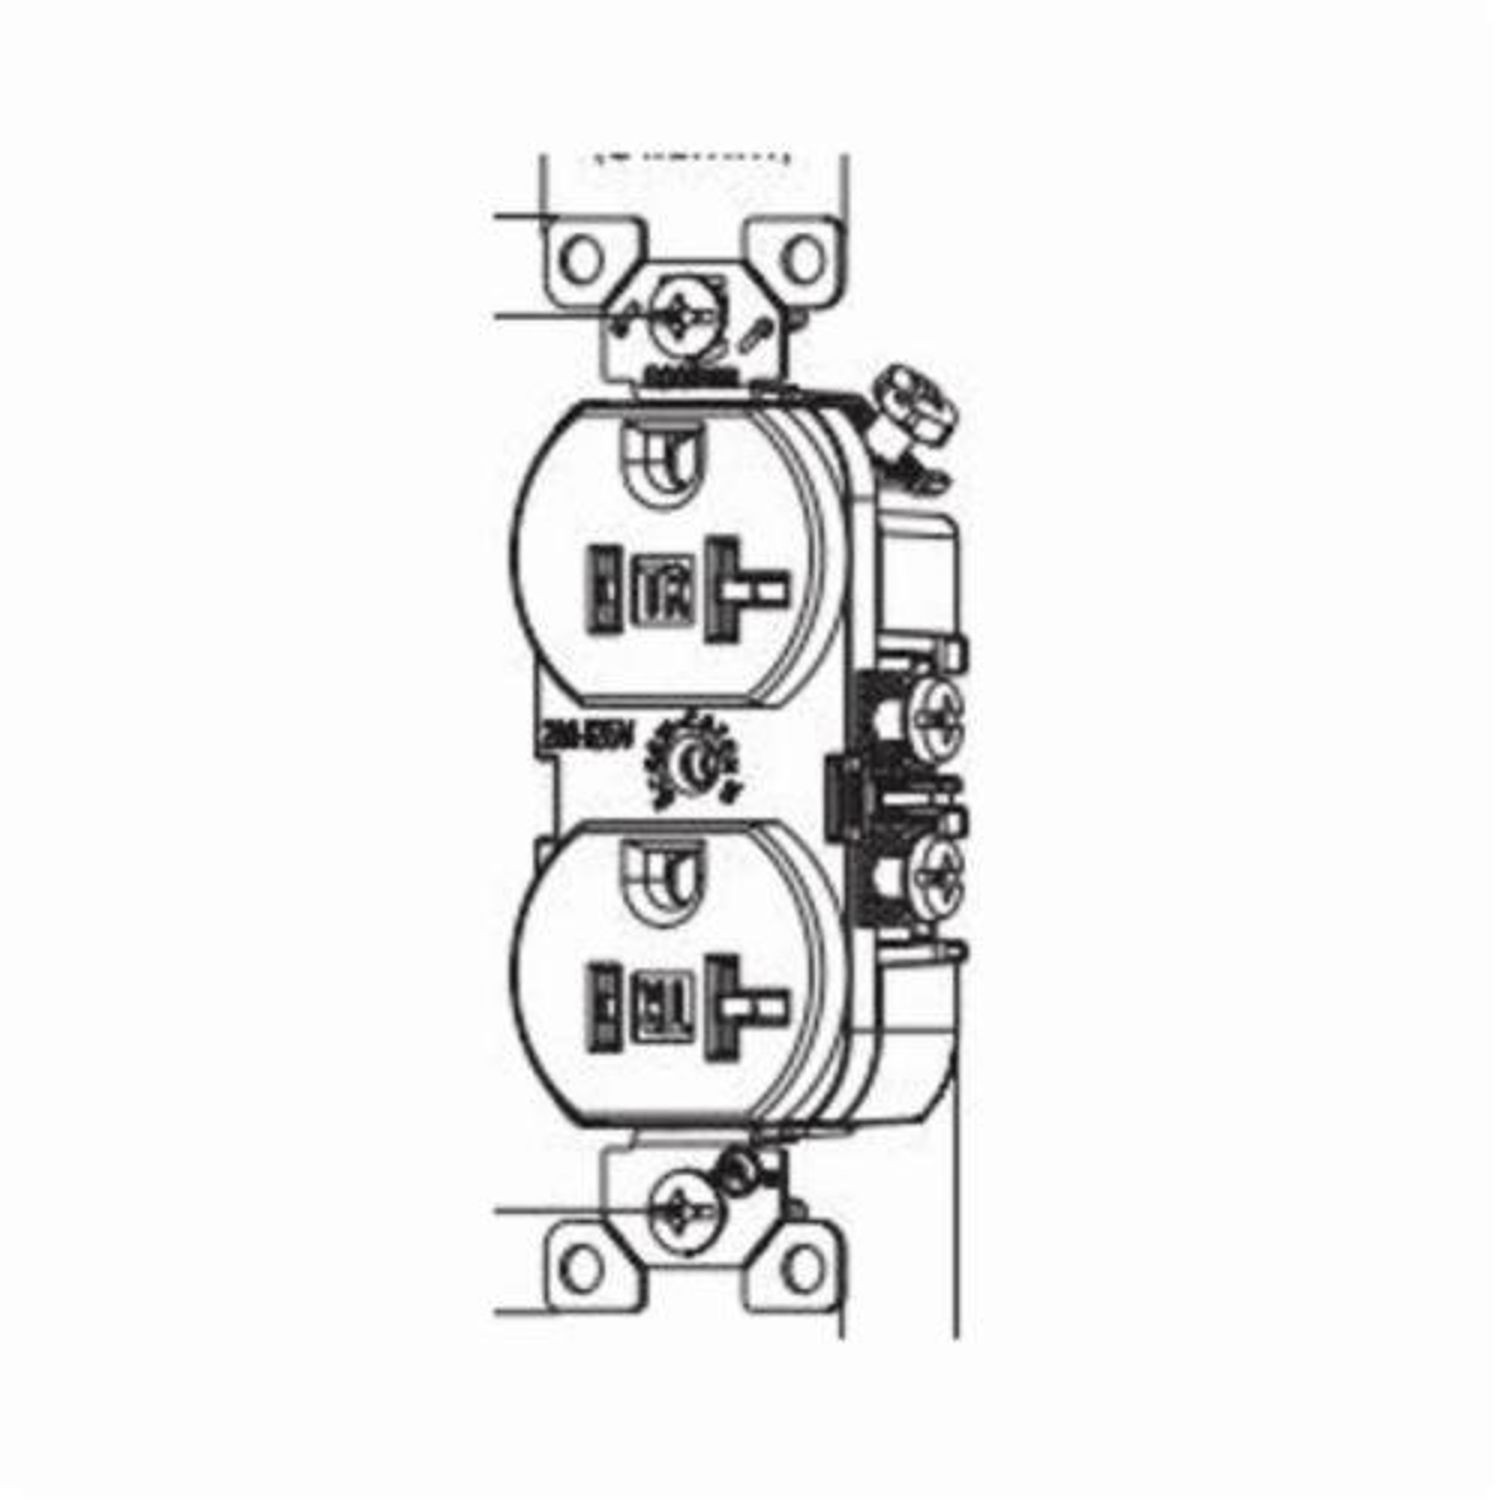 Eaton Wiring Devices Arrow Hart Trcr20gy Straight Blade Duplex Receptacle 125 Vac 20 A 2 Poles 3 Wires Gray